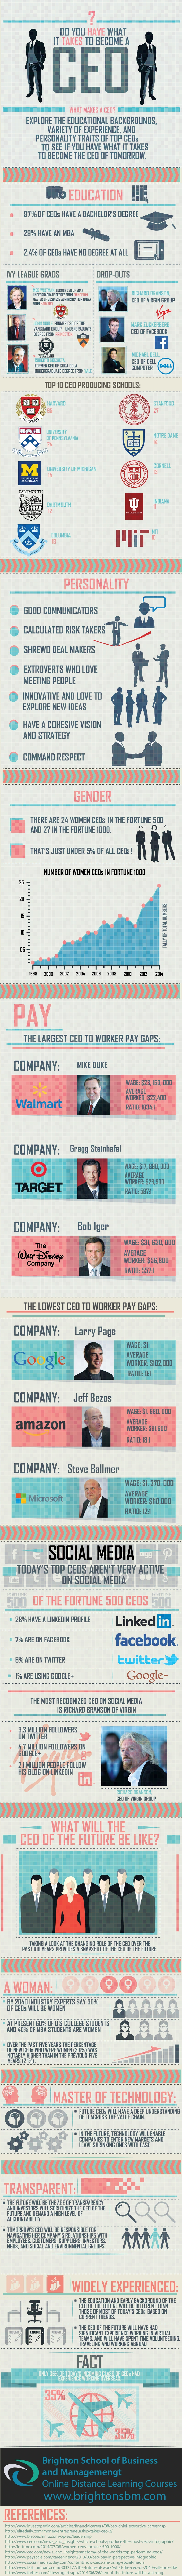 Do You Have What It Takes To Become A CEO? [Infographic]